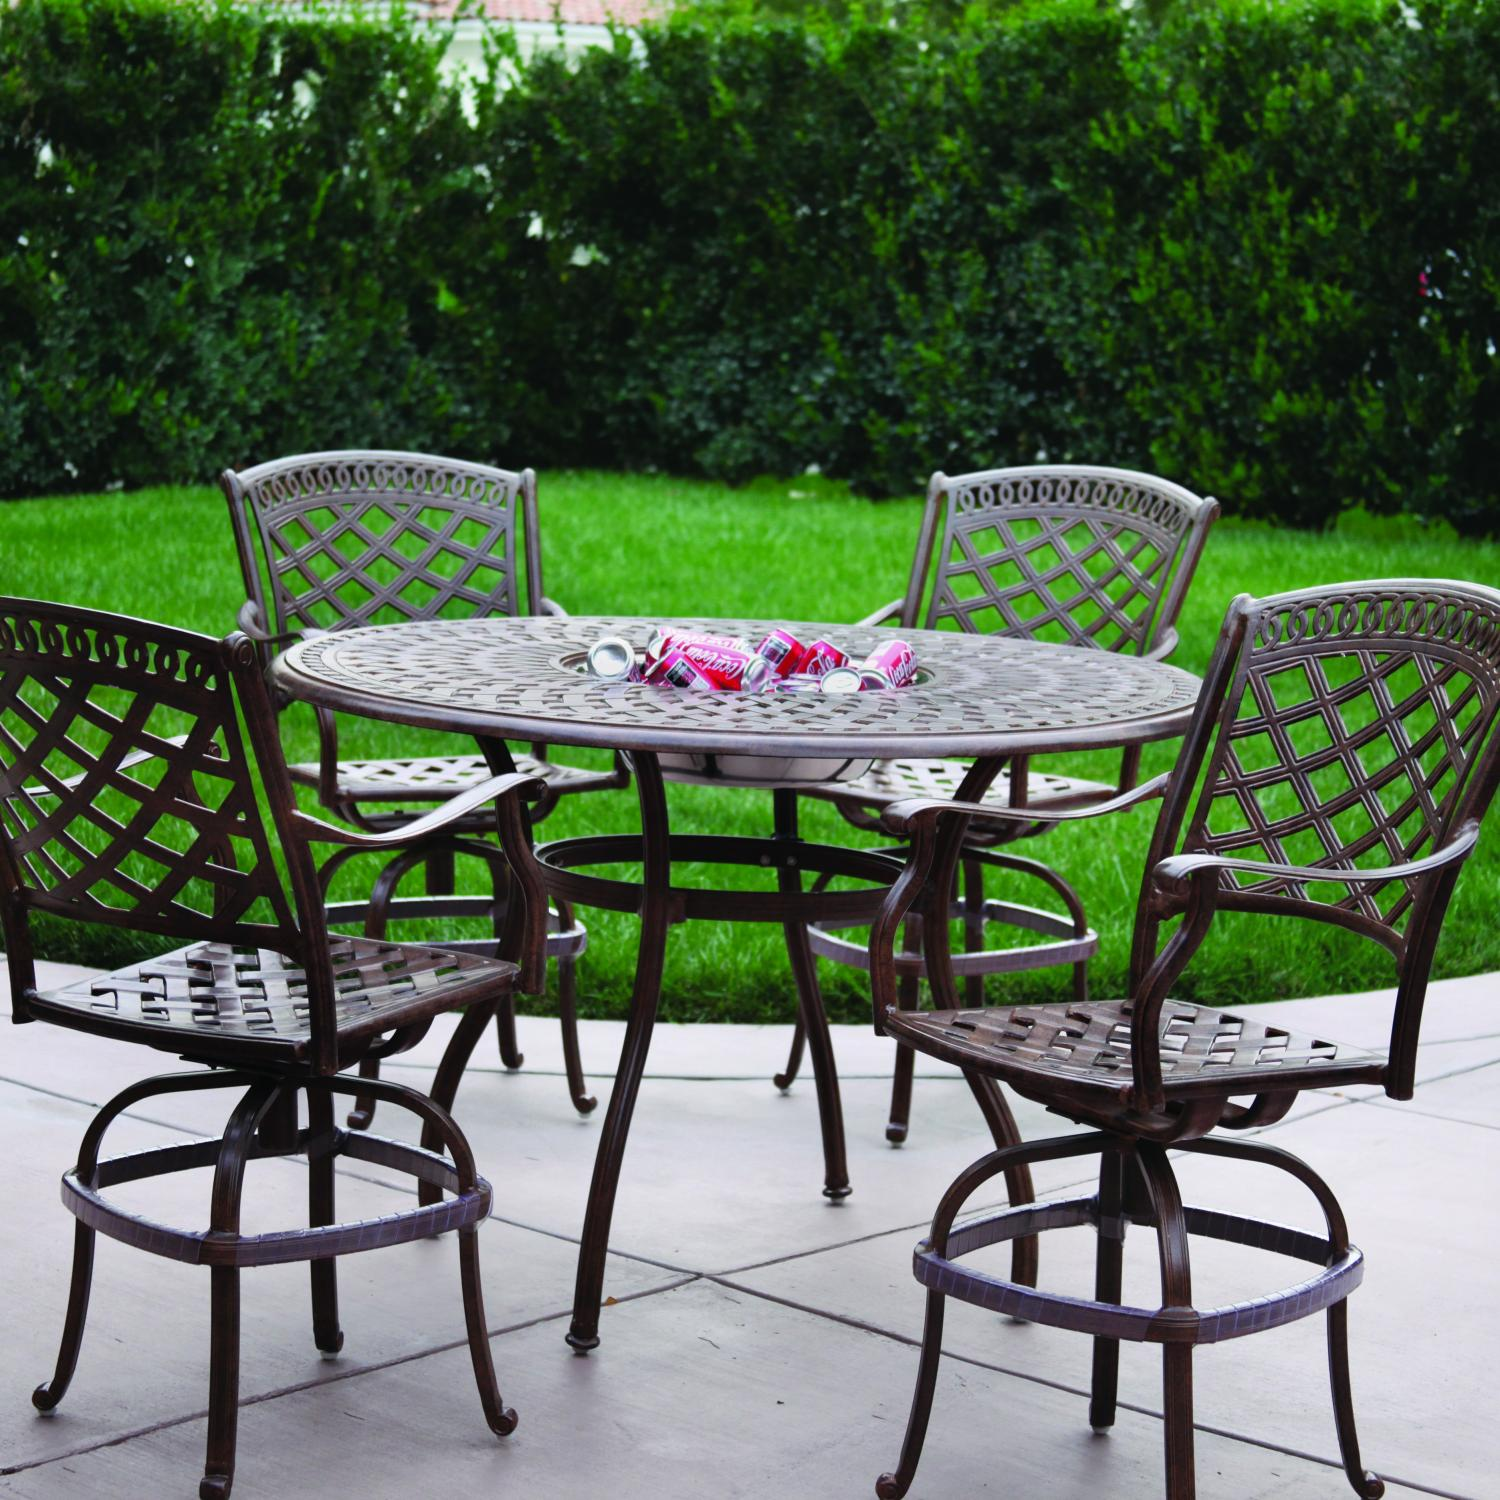 Cheap patio dining sets patio design ideas for Inexpensive patio furniture